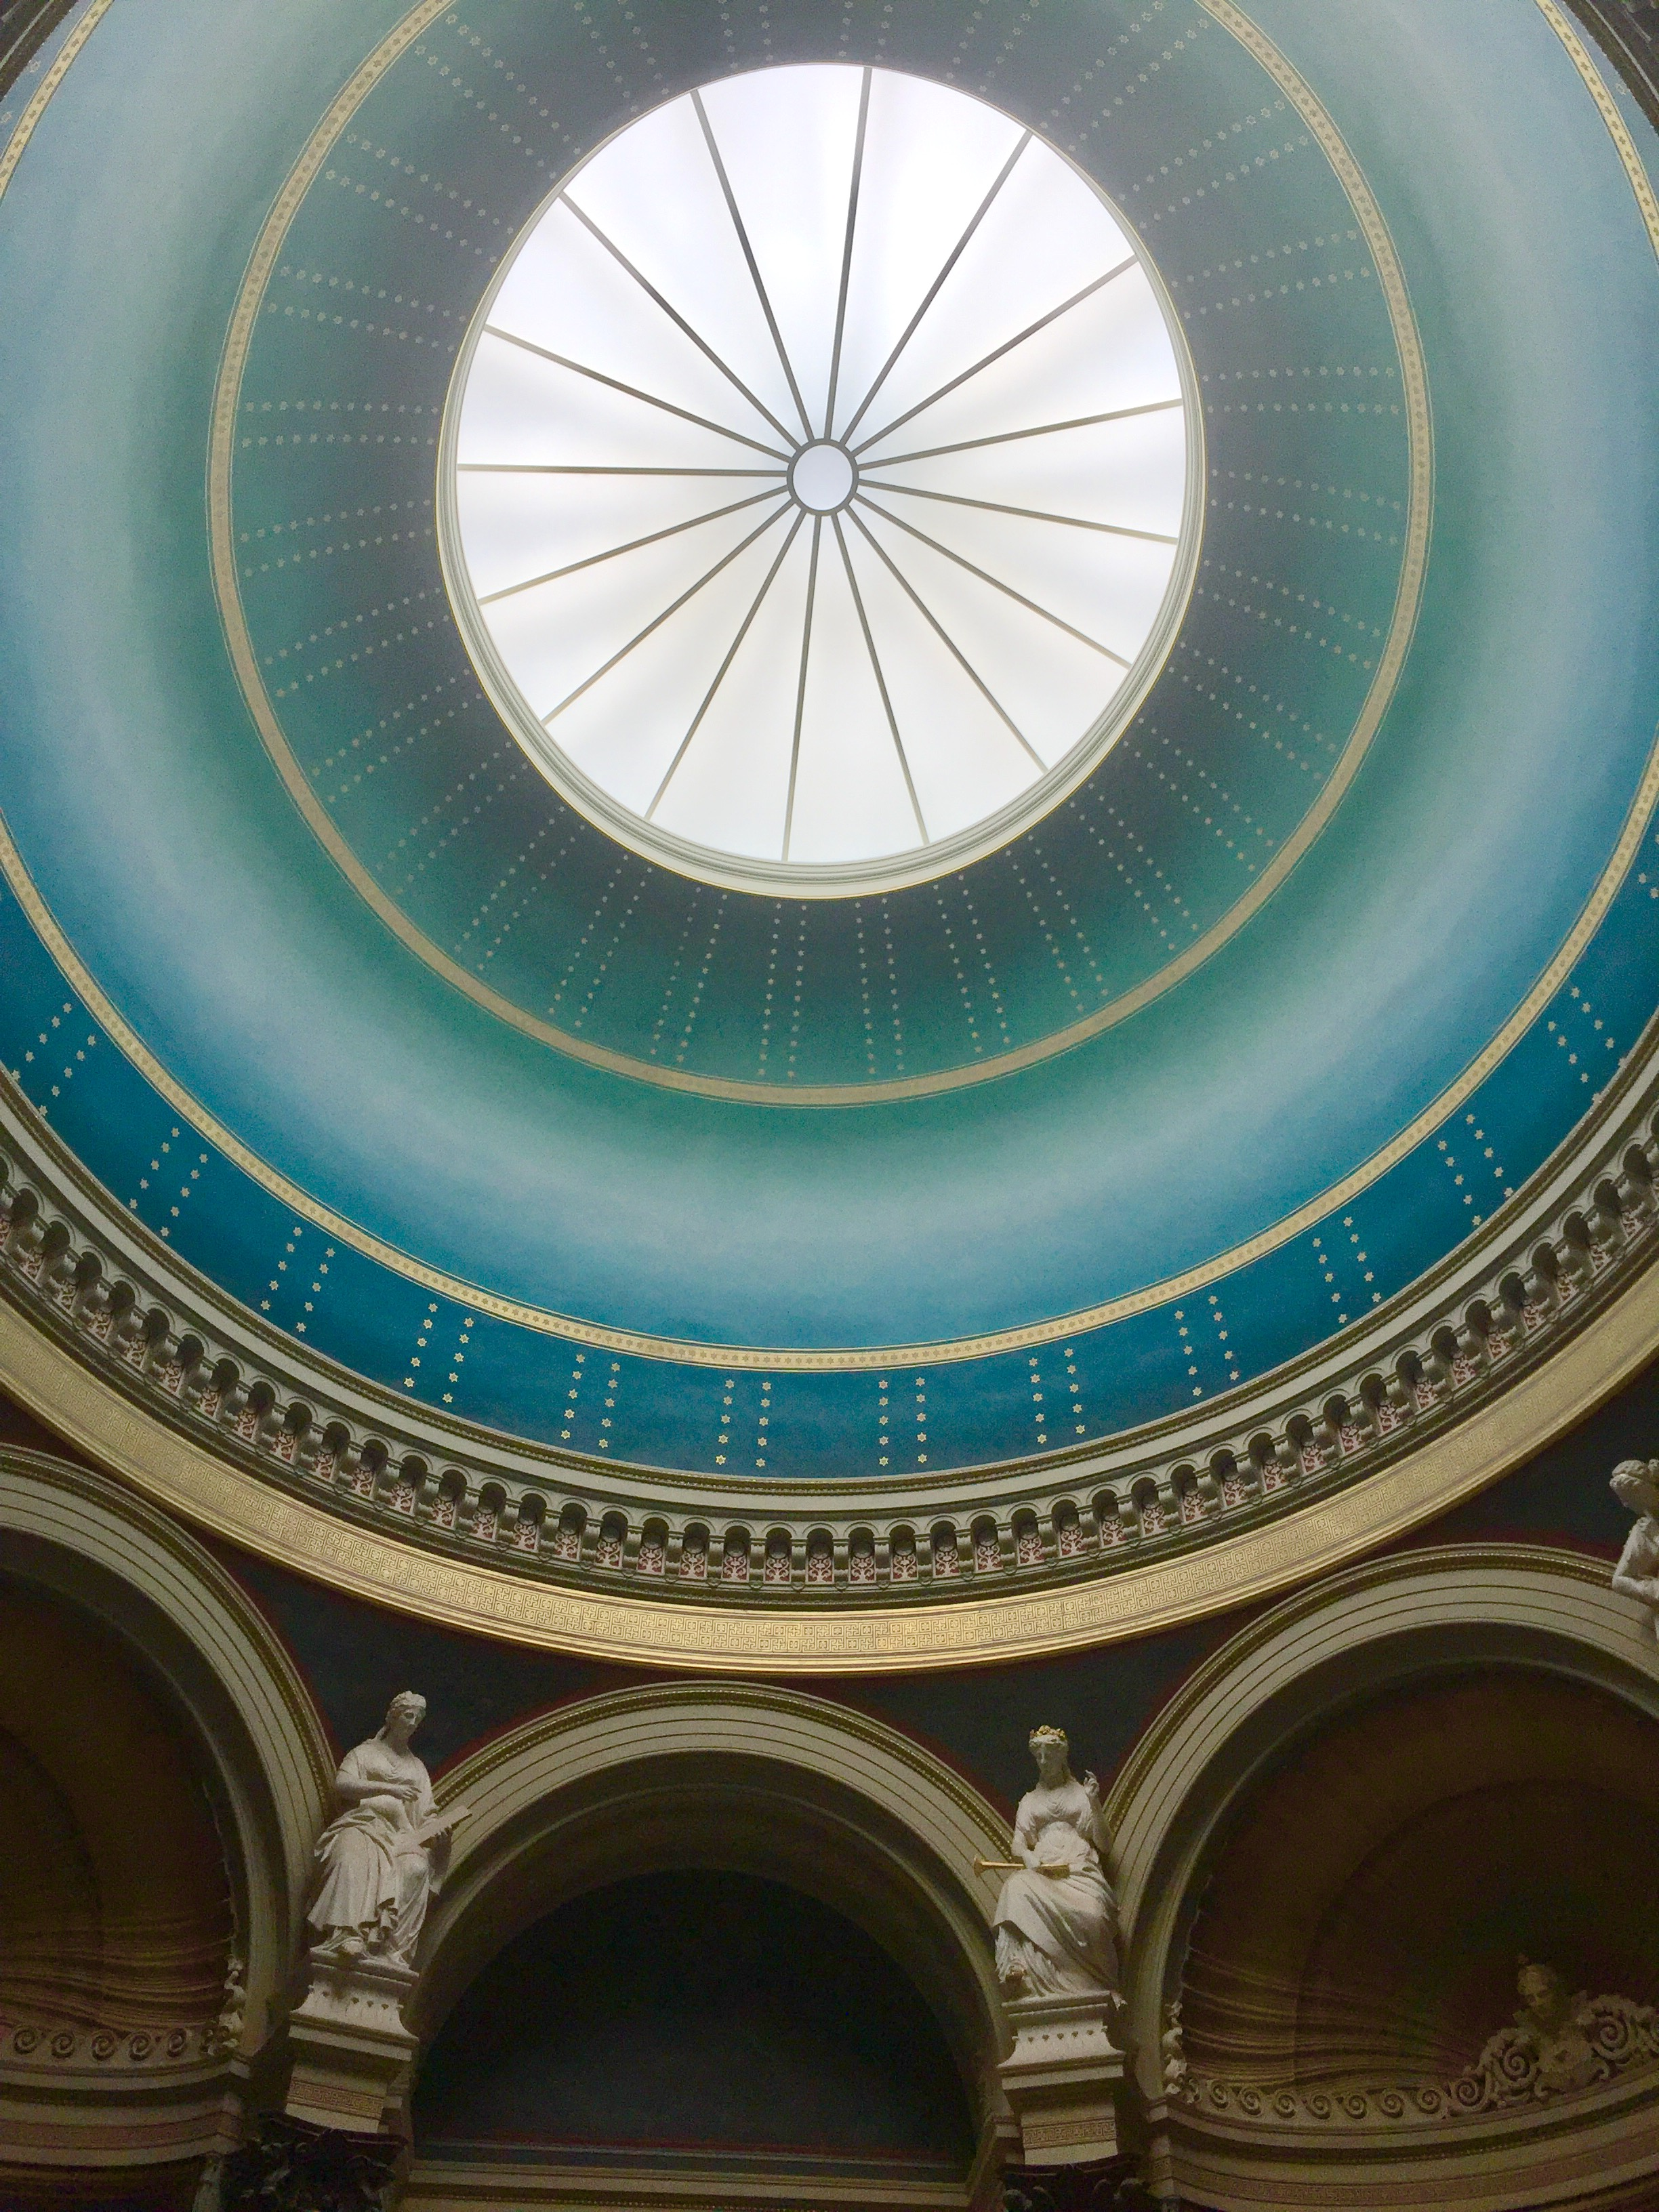 One of the domes in the museum